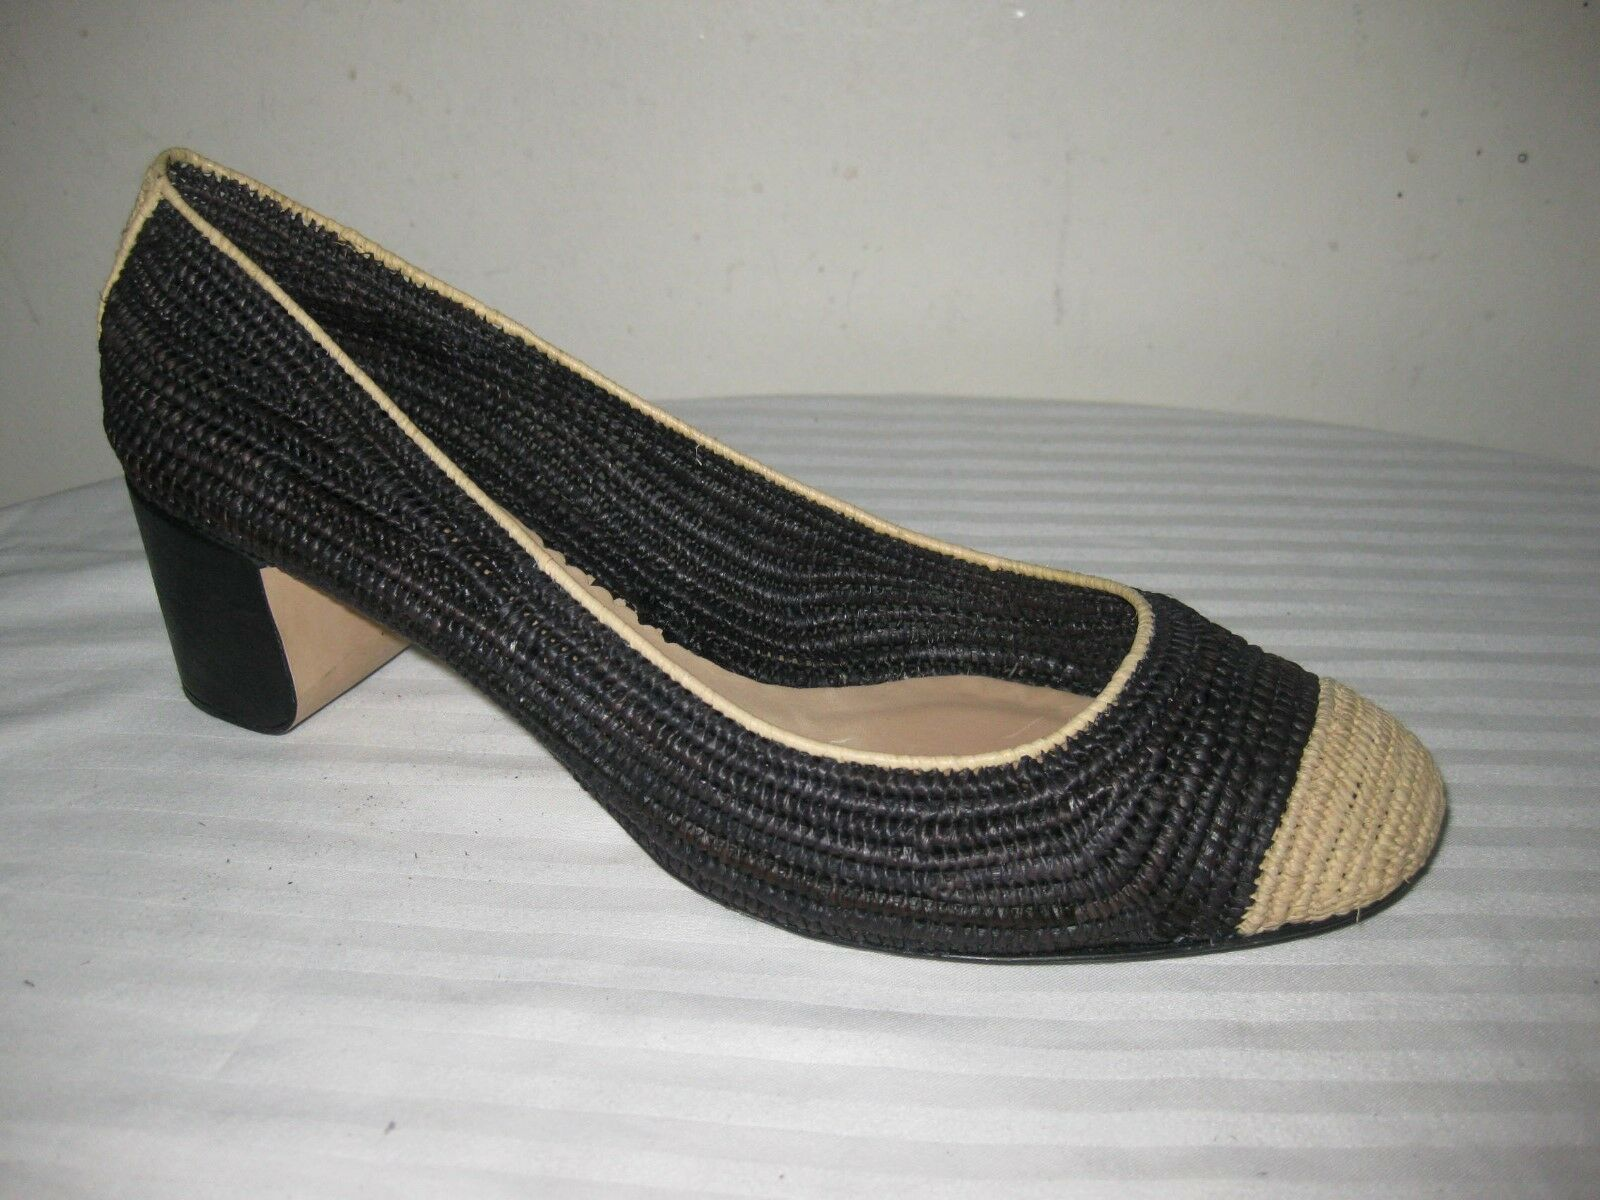 Reed Krakoff Straw Woven Round Toe Pumps Shoes Shoes Pumps Women's Size 38.5 / 8.5 f7a745